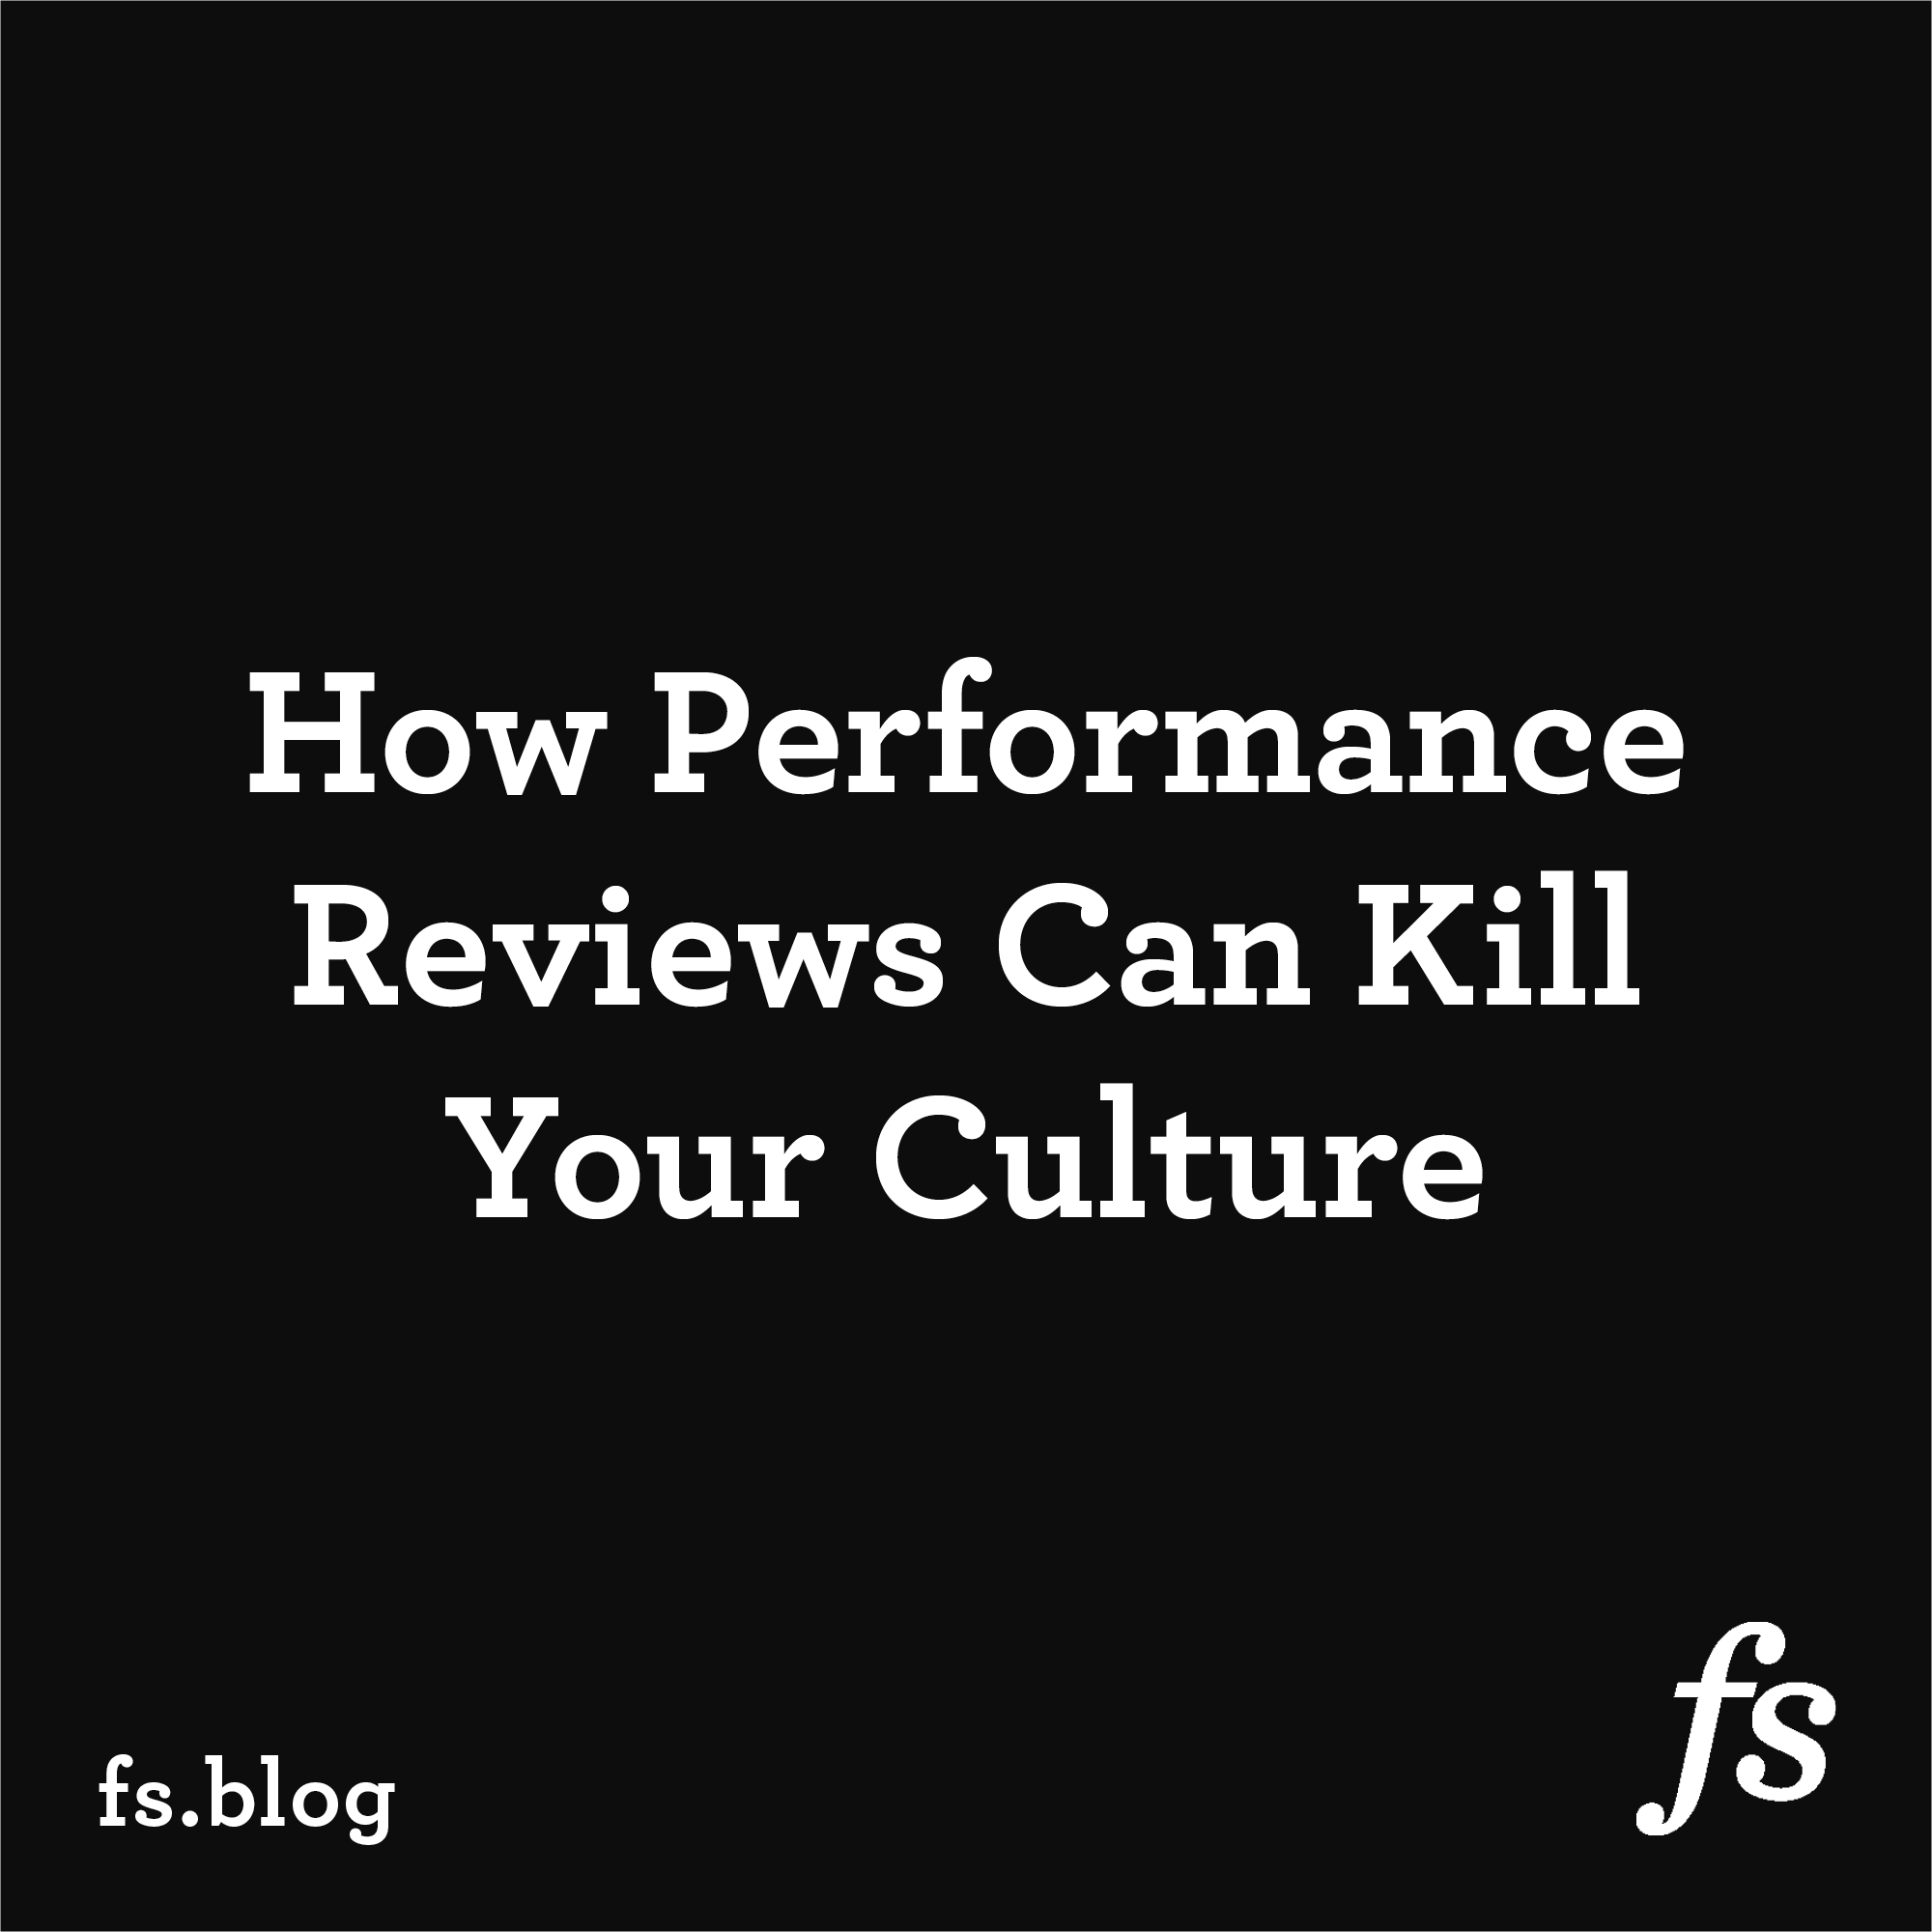 How Performance Reviews Can Kill Your Culture